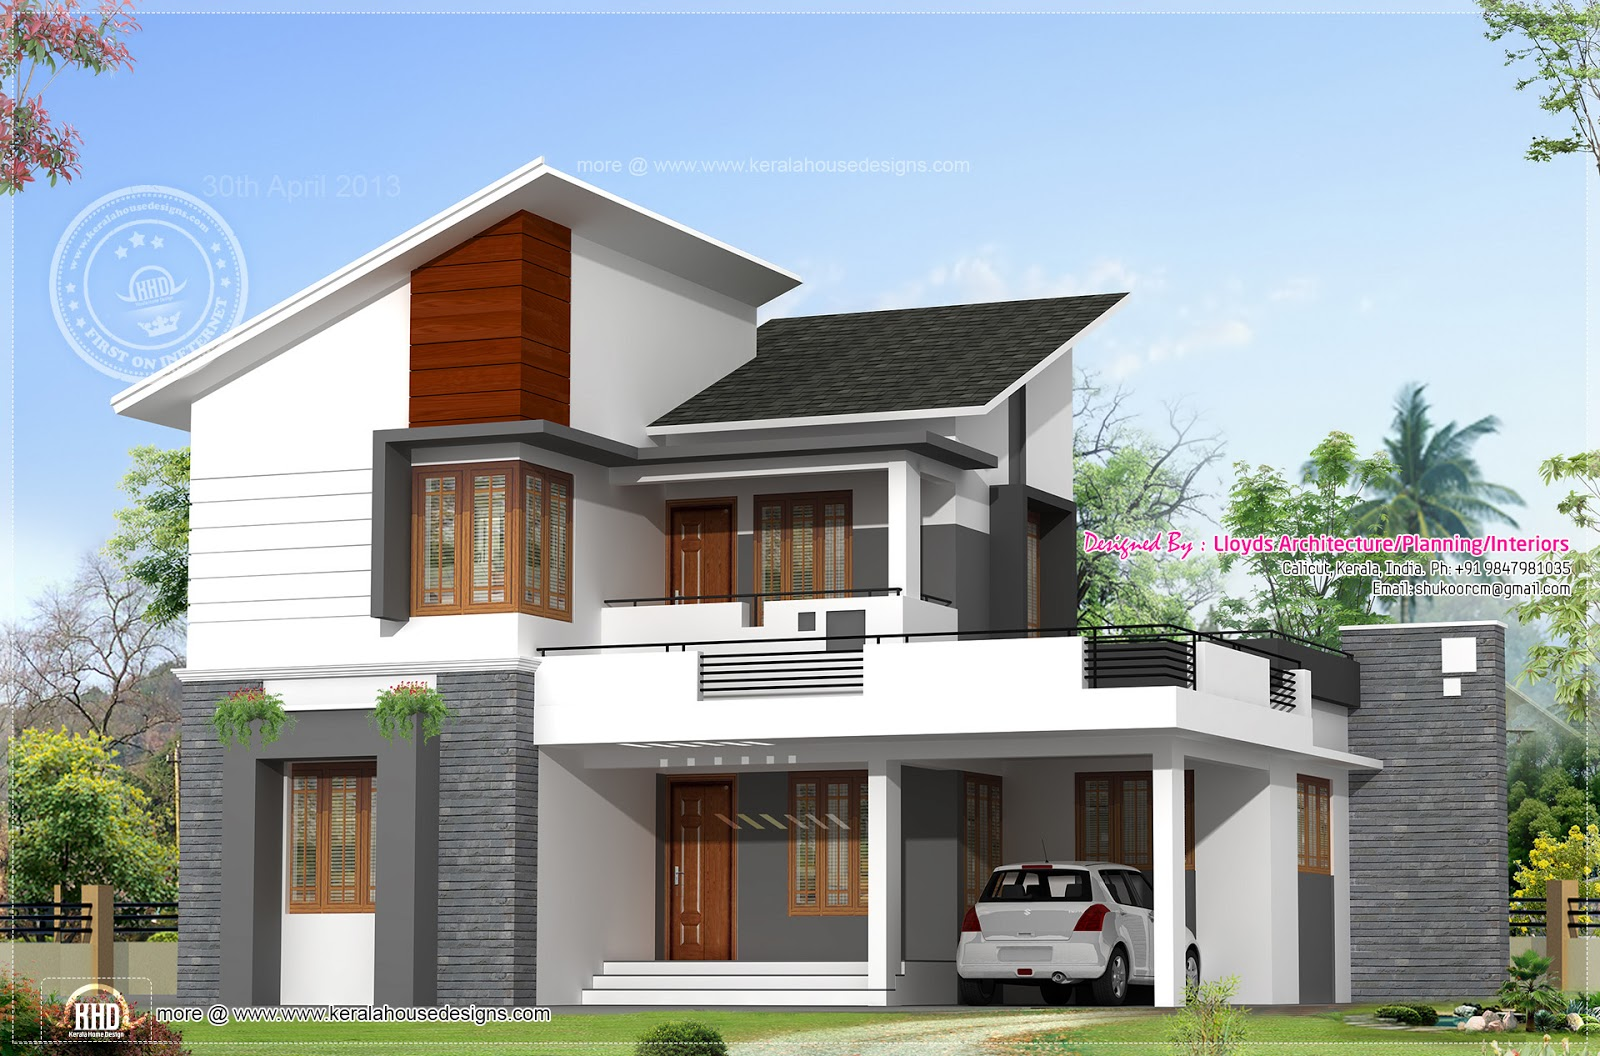 Villa Design Plan Of 1878 Free Floor Plan And Elevation Home Kerala Plans